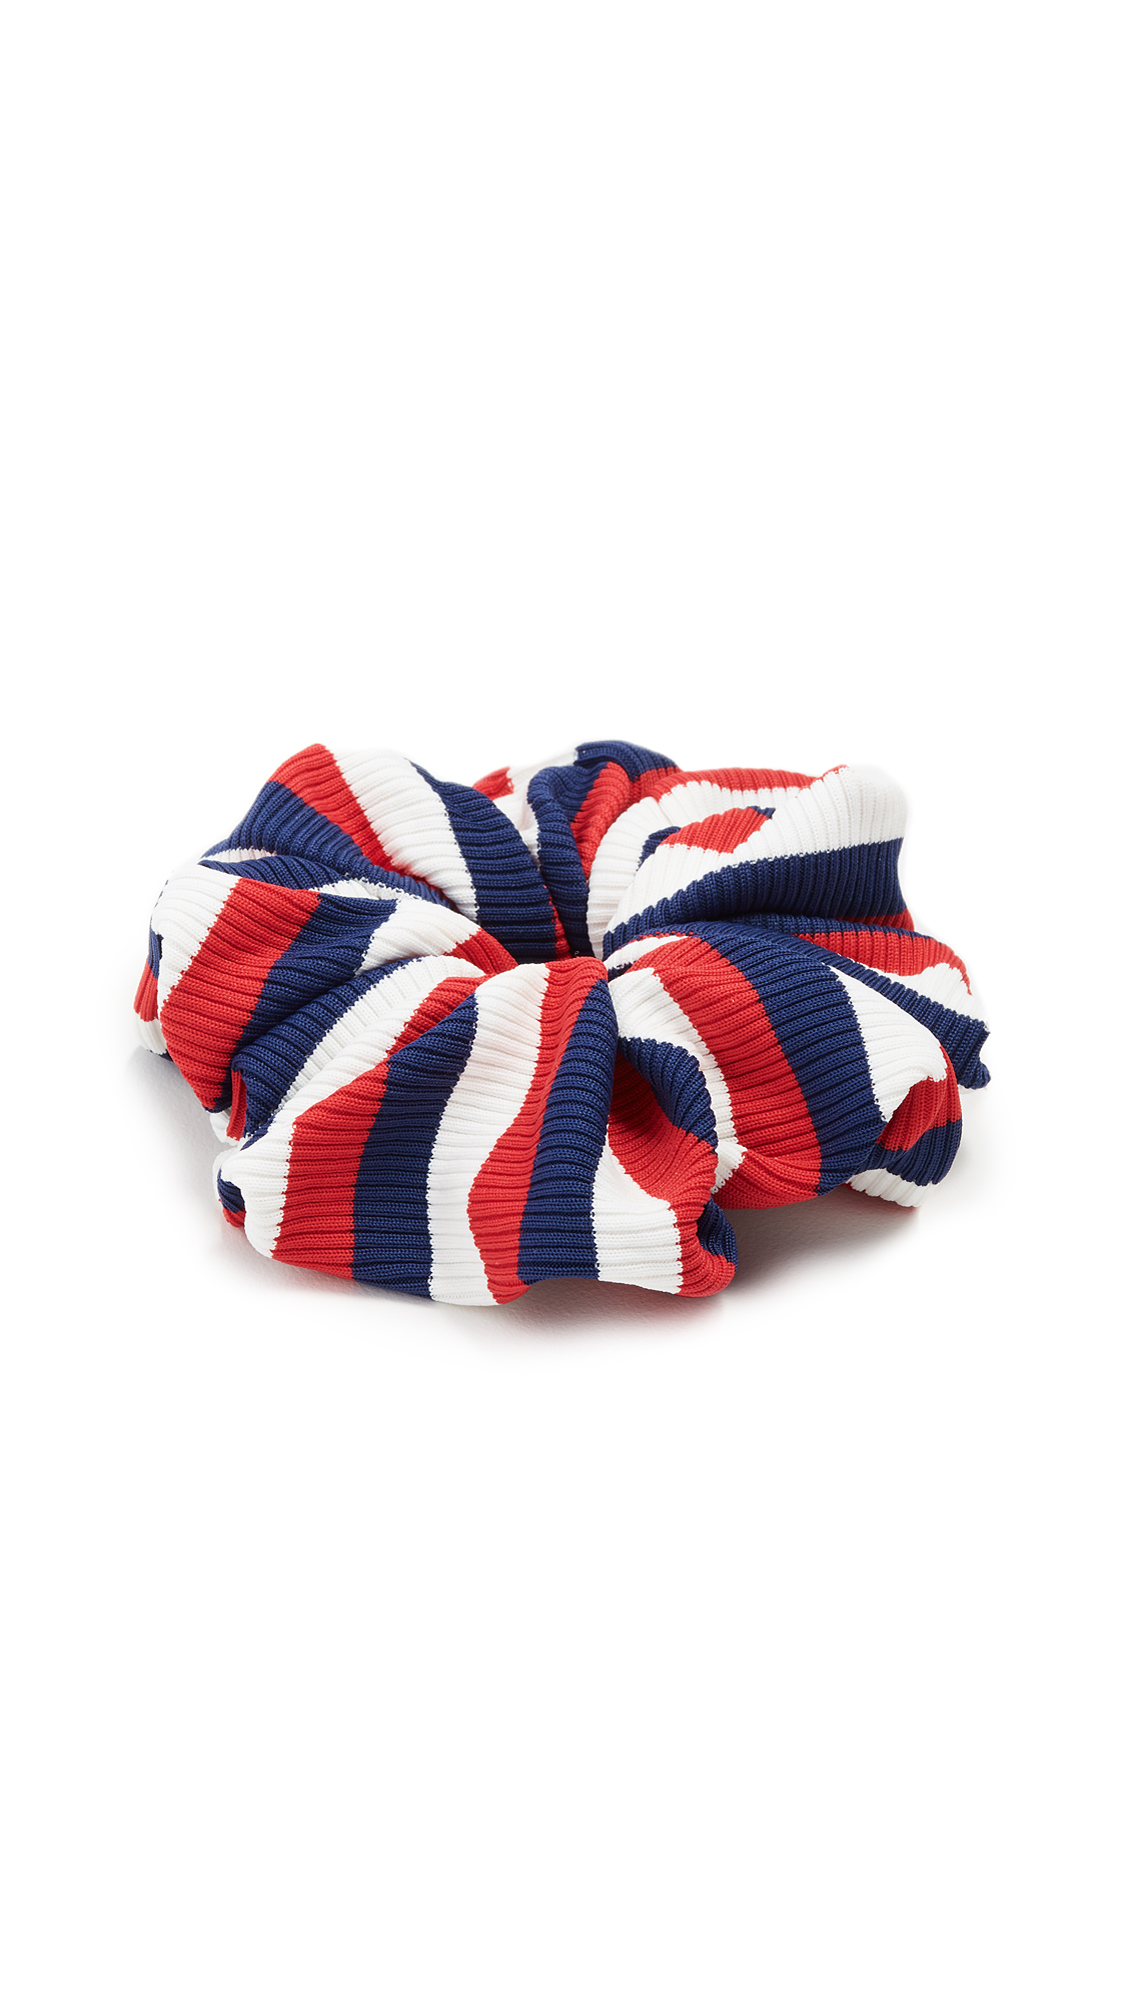 Solid & Striped The American Rib Scrunchie In Red/Blue/White